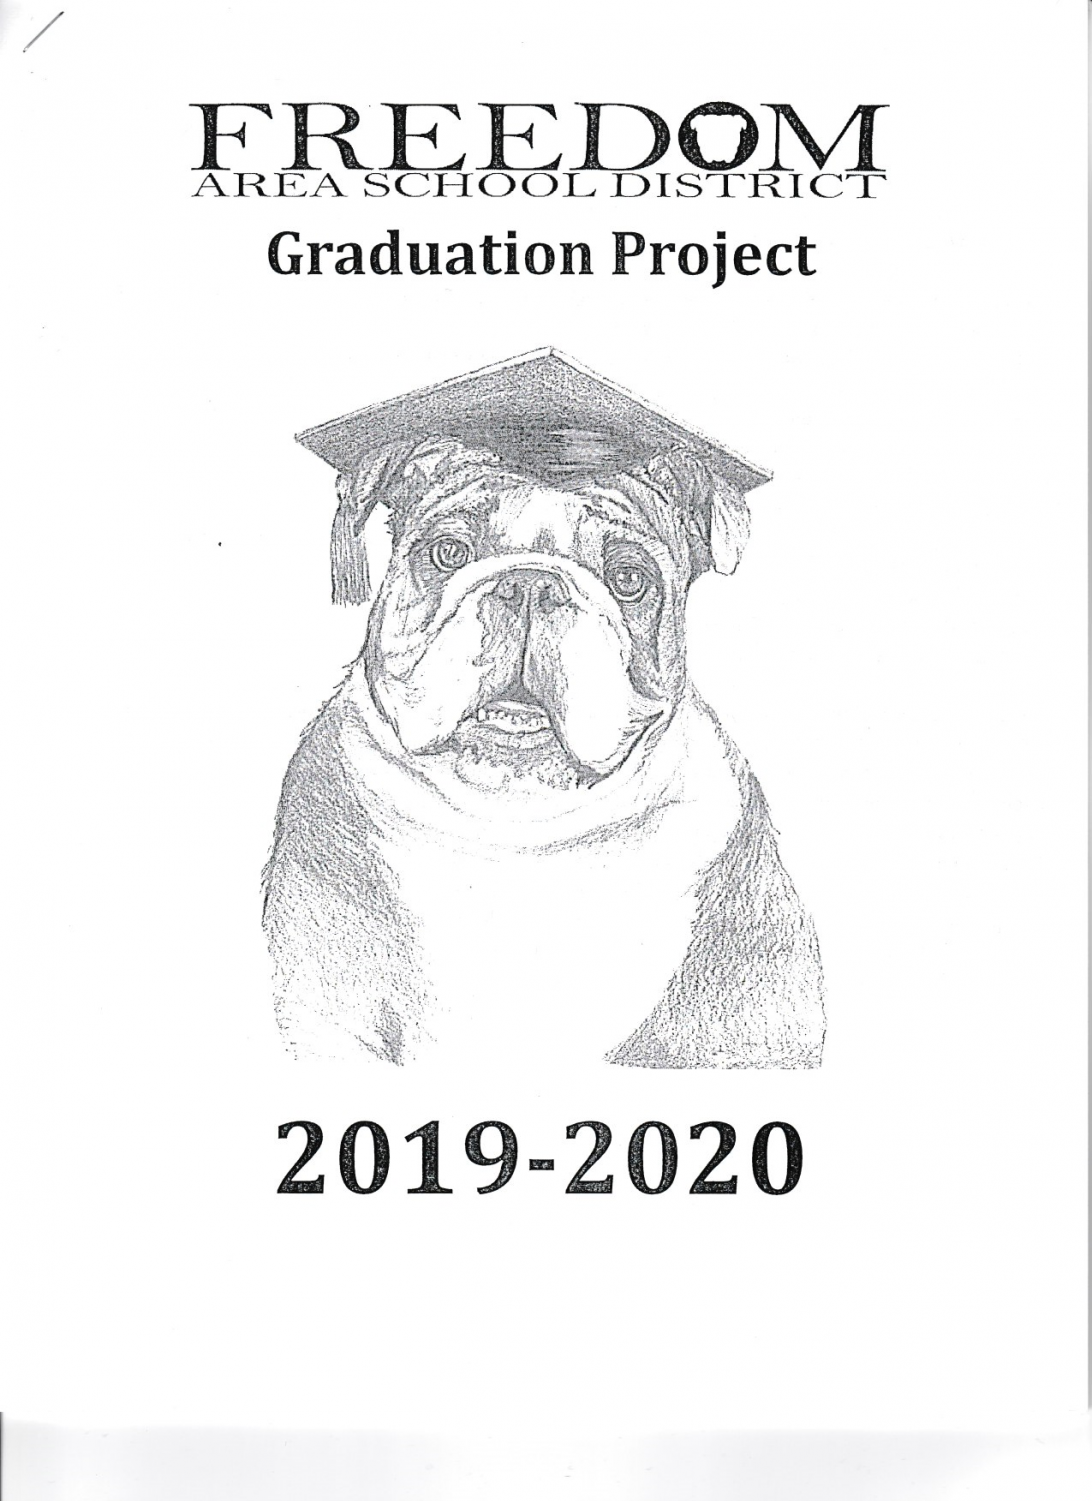 This artwork of a bulldog with a graduation cap on was created by high school art teacher Kaylee Haggerty and is on the front cover of every senior project packet that all the upcoming seniors received.